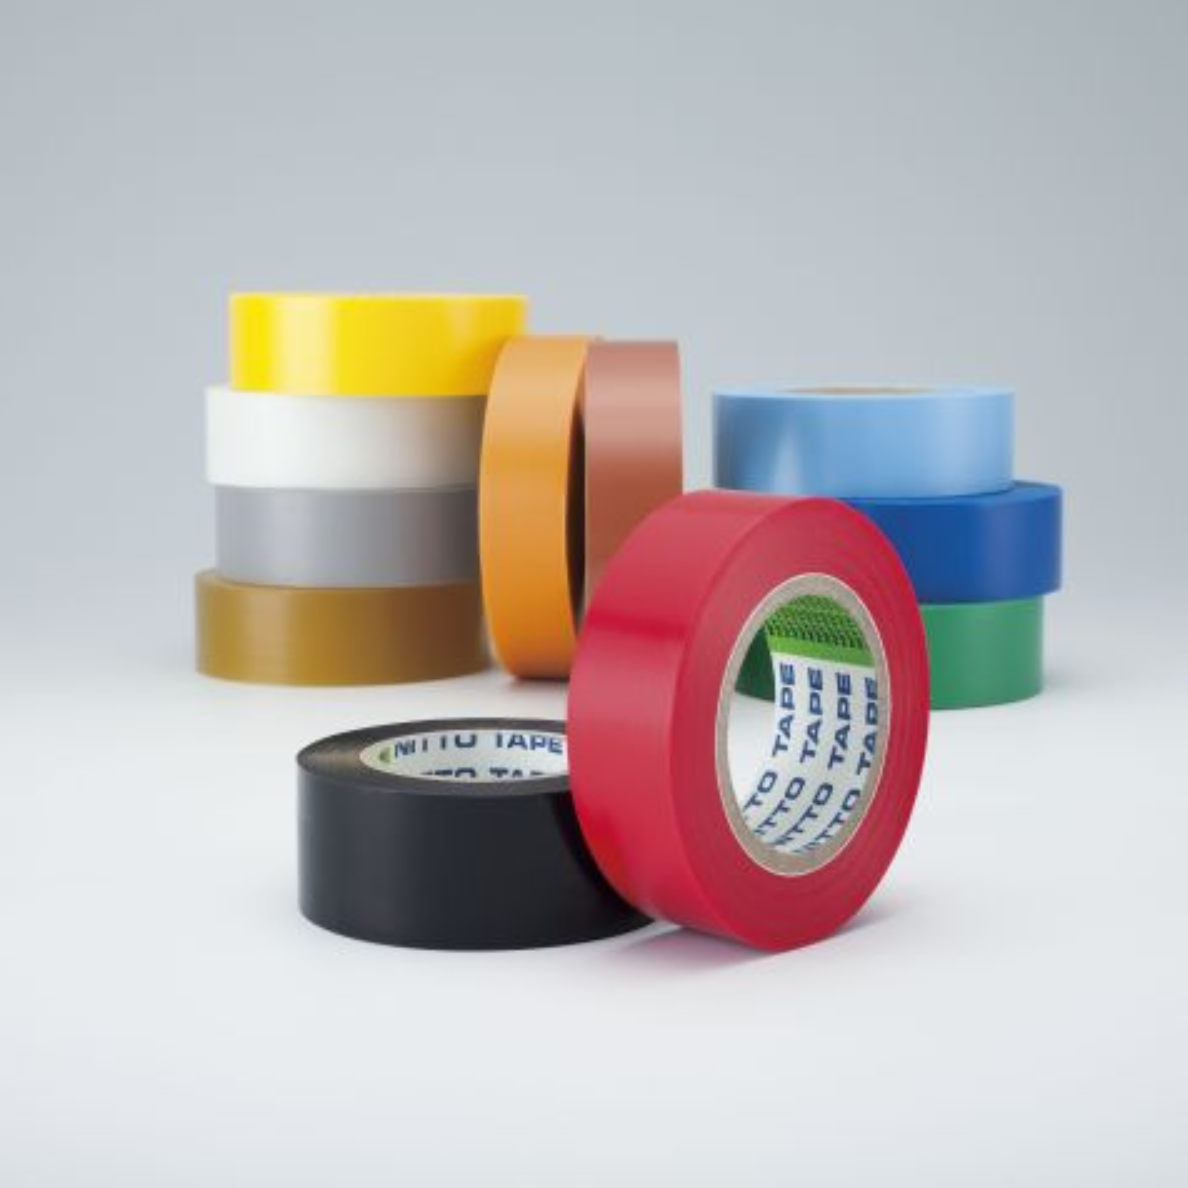 Isolasi Nitto Lighting Indonesia Supplier Dan Distributor Lampu Wiring Harness Tape Denko Japan Vinyl Adhesive Tapes No201 For General Insulation Wire